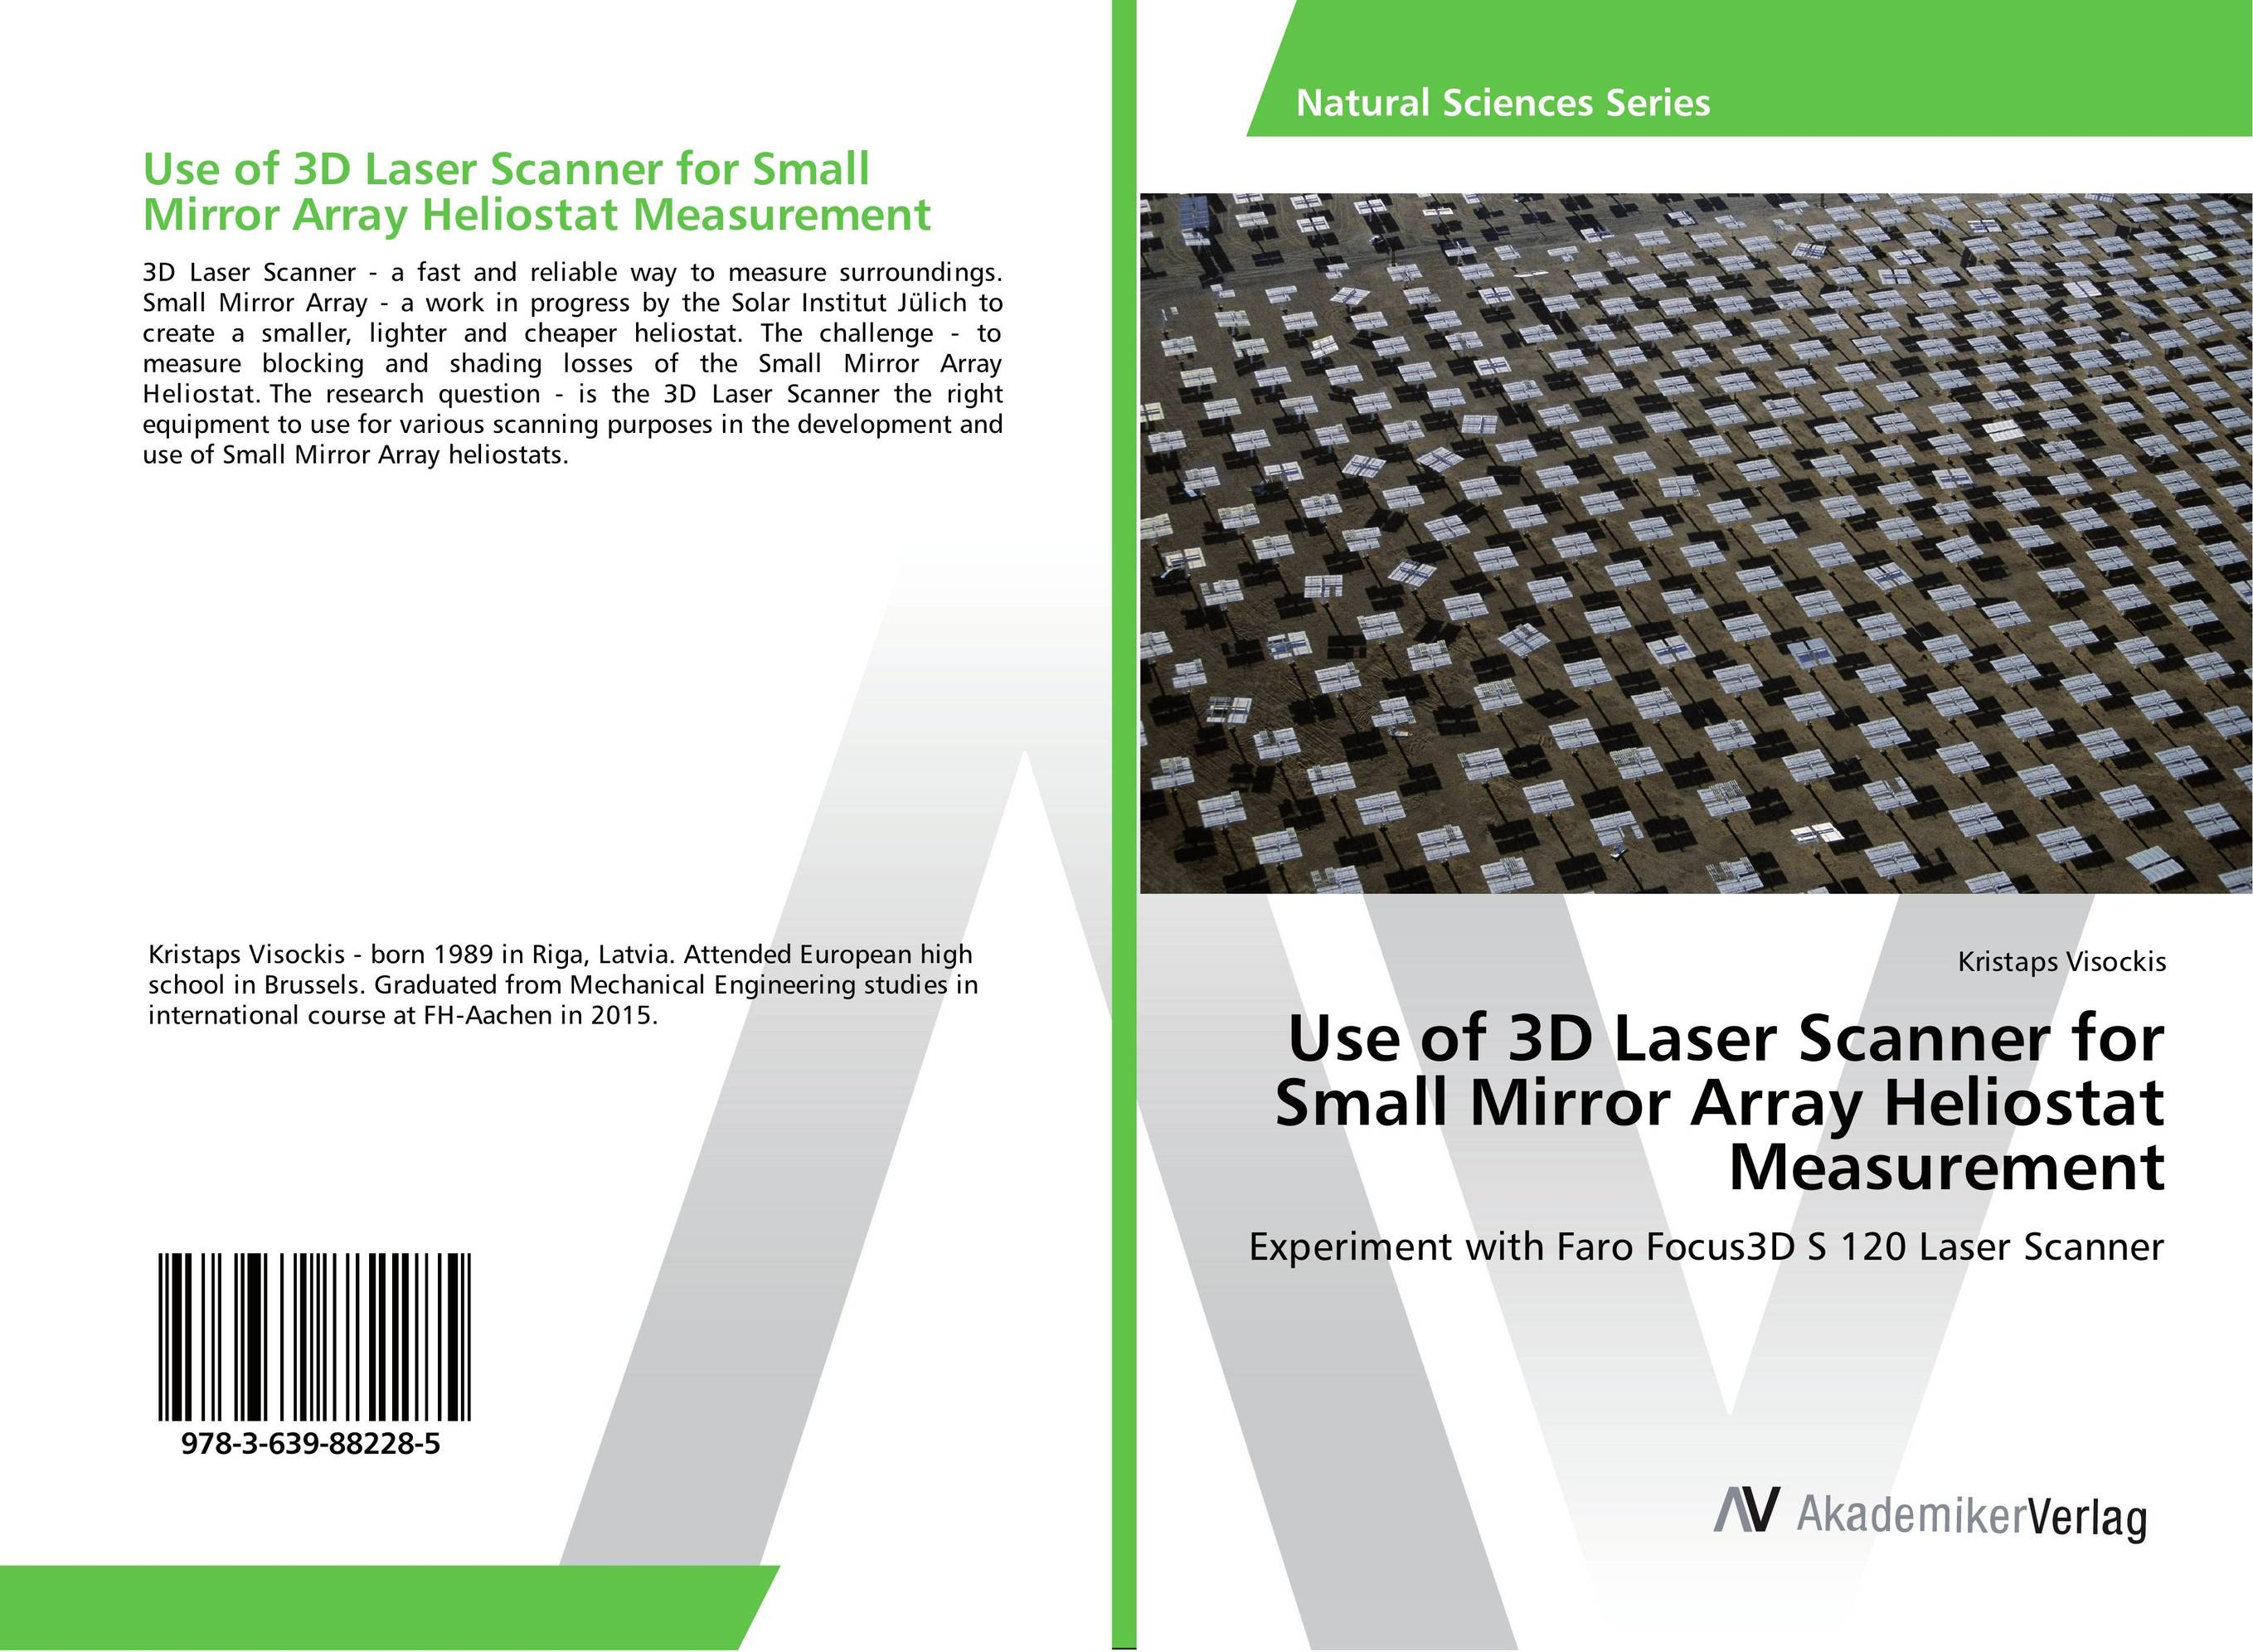 Use of 3D Laser Scanner for Small Mirror Array Heliostat Measurement the mirror test